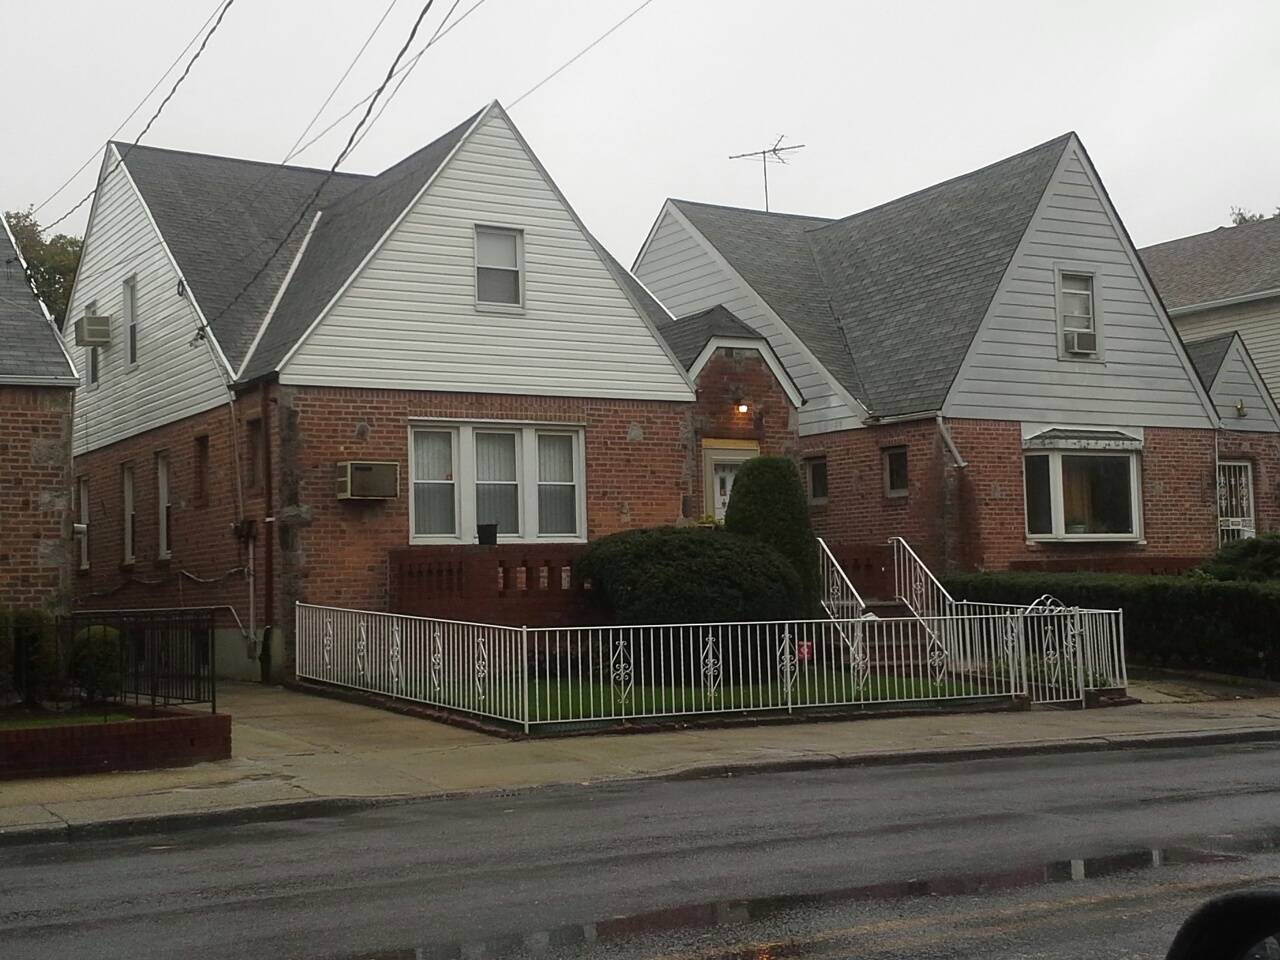 one family homes in flatbush brooklyn, real estate agents in flatbush brooklyn